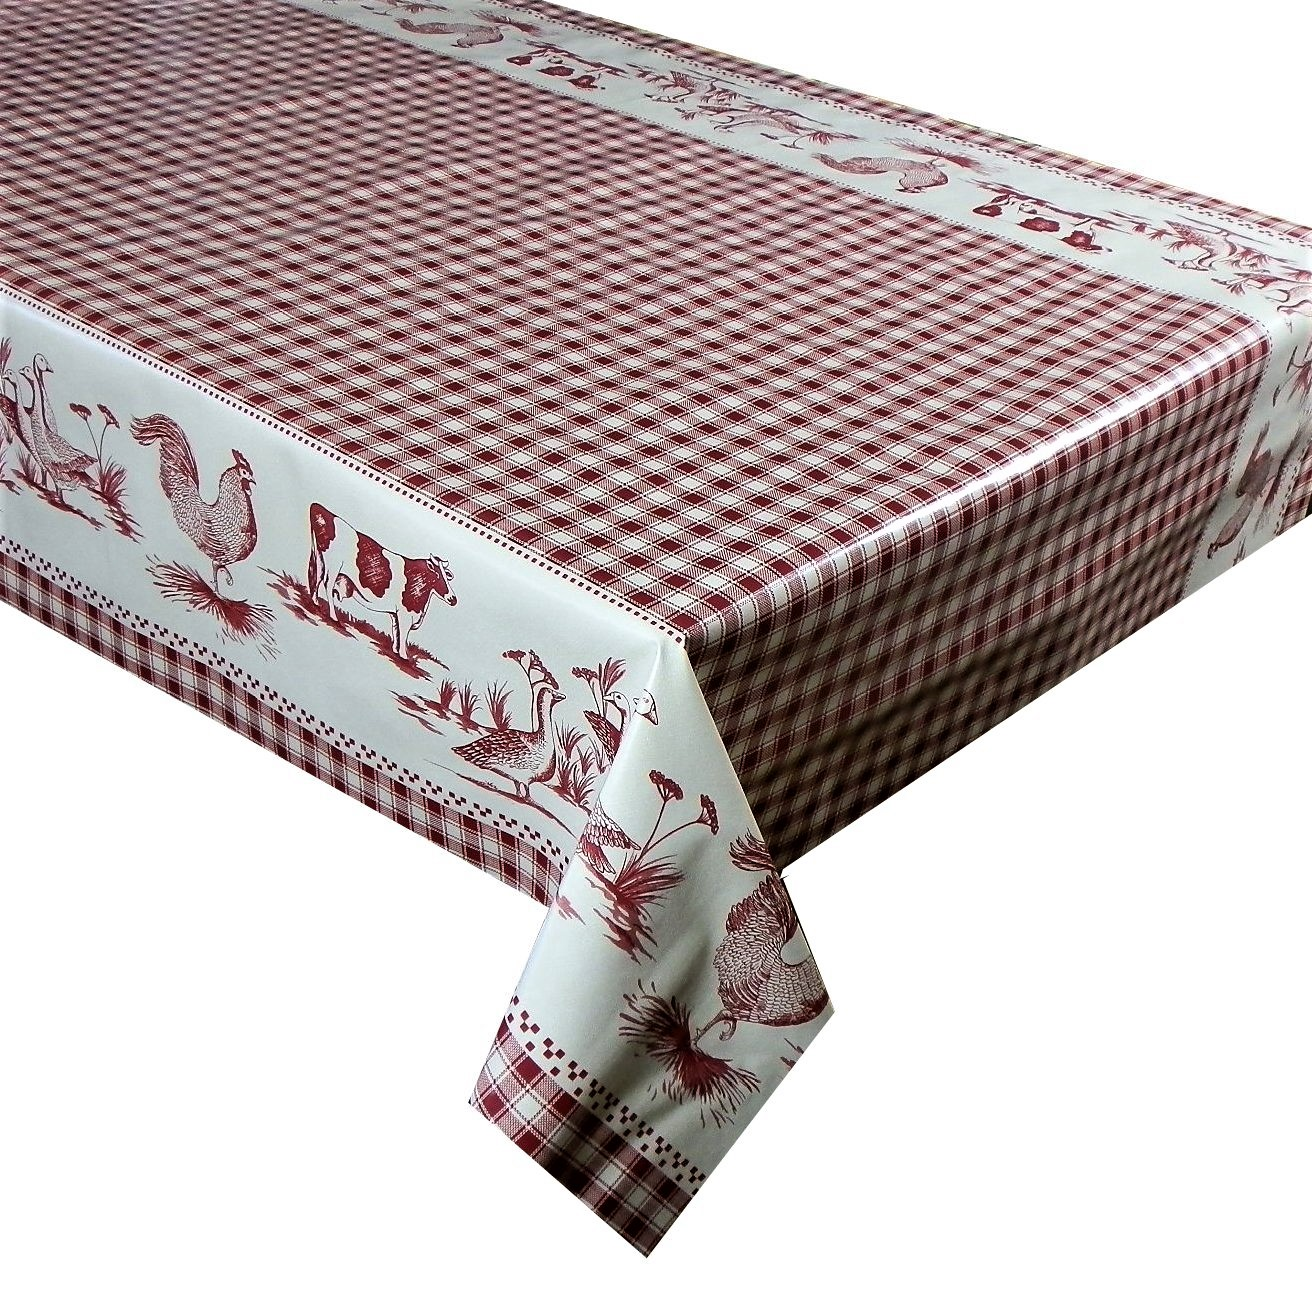 red check farm 79 vinyl tablecloth textile backed pvc coated sold in half metres 137cm 54. Black Bedroom Furniture Sets. Home Design Ideas